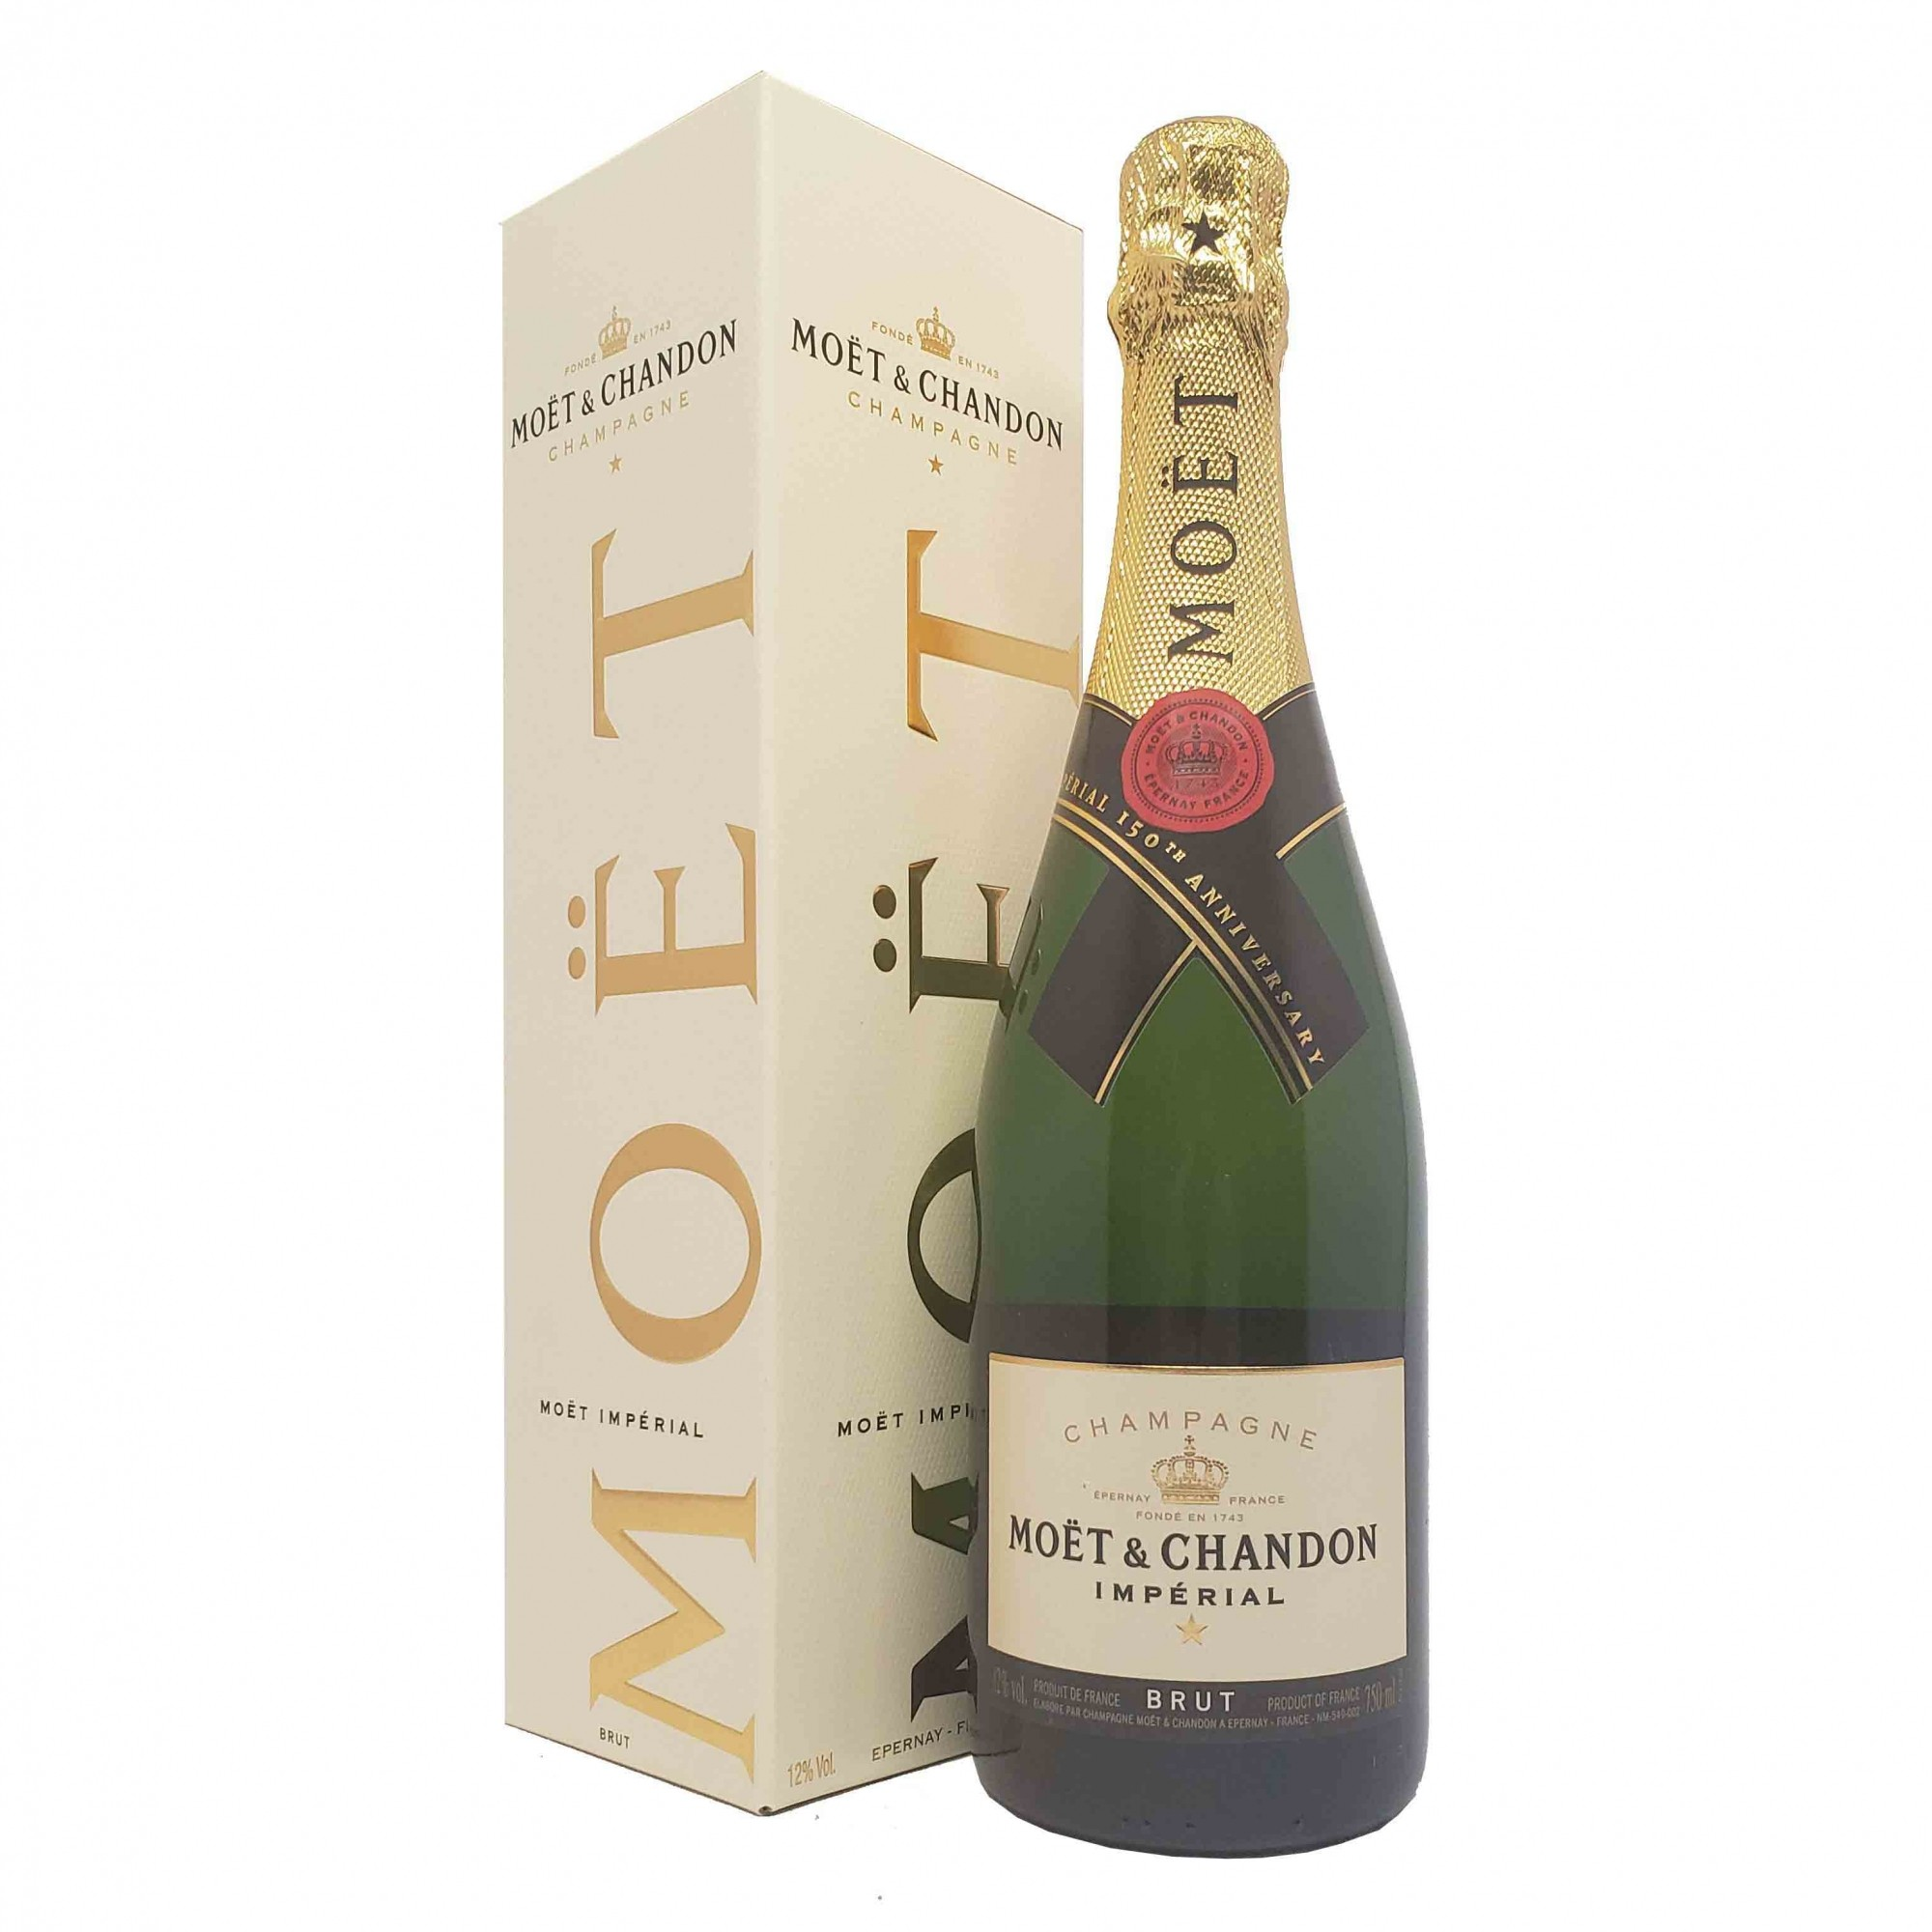 Champagne Moet & Chandon Imperial Brut - 750ml